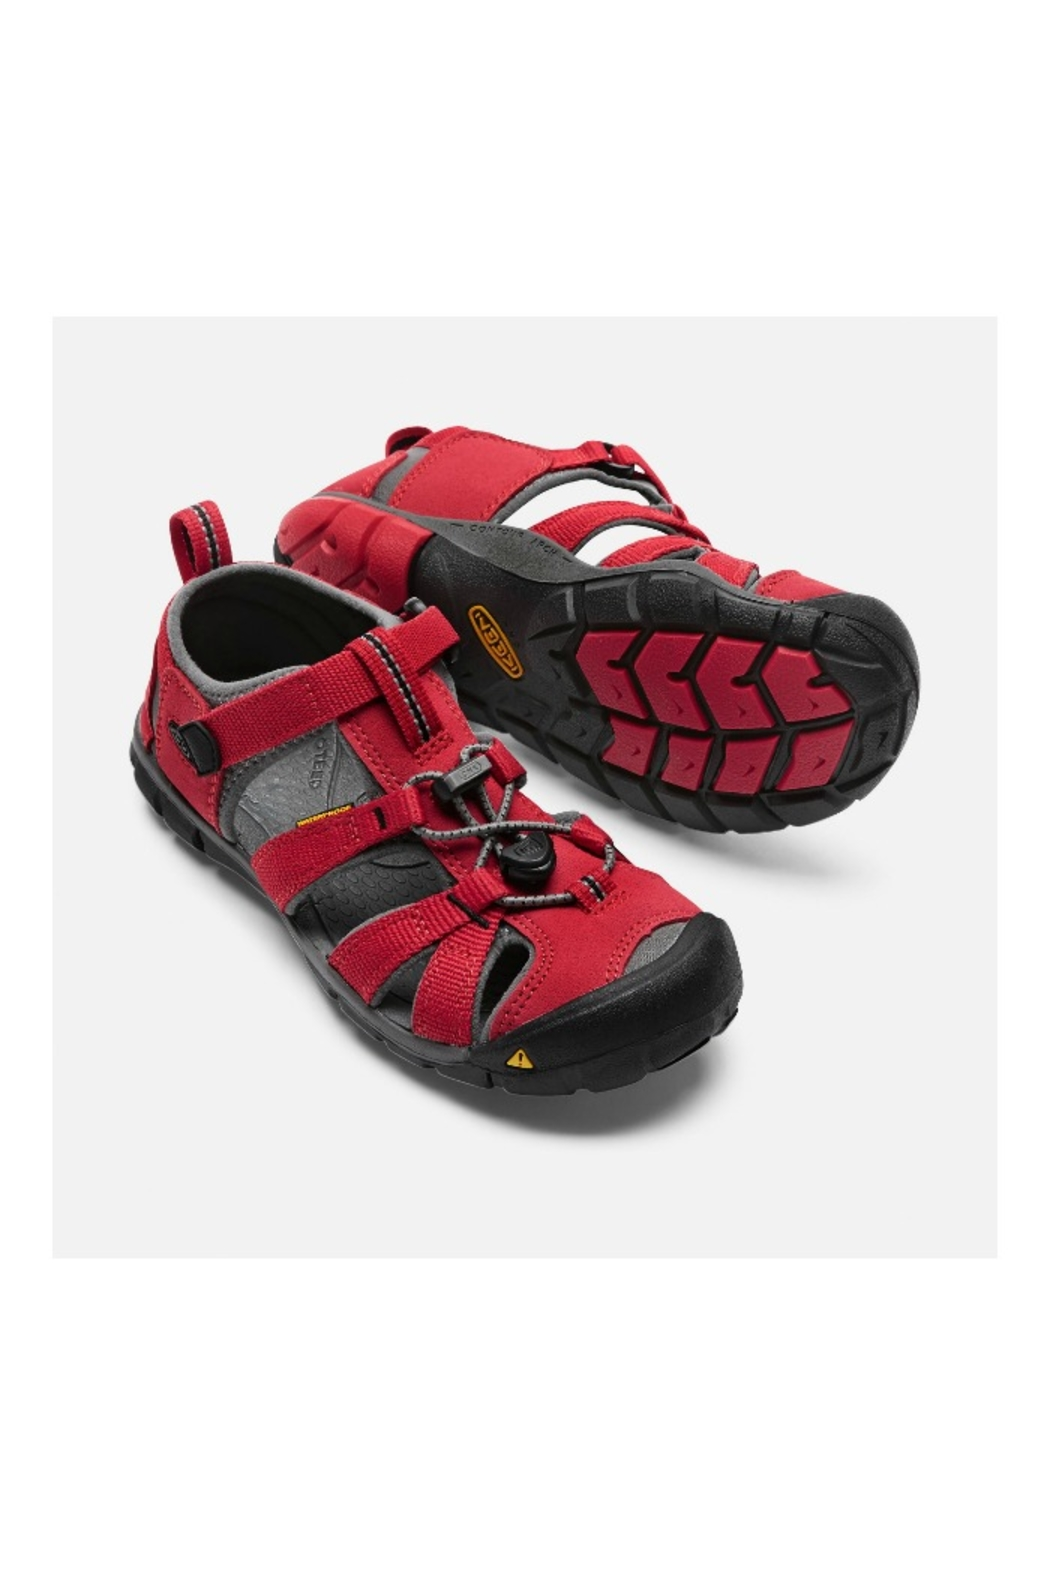 Keen Seacamp II CNX Youth in Racing Red/Gargoyle - Side Cropped Image